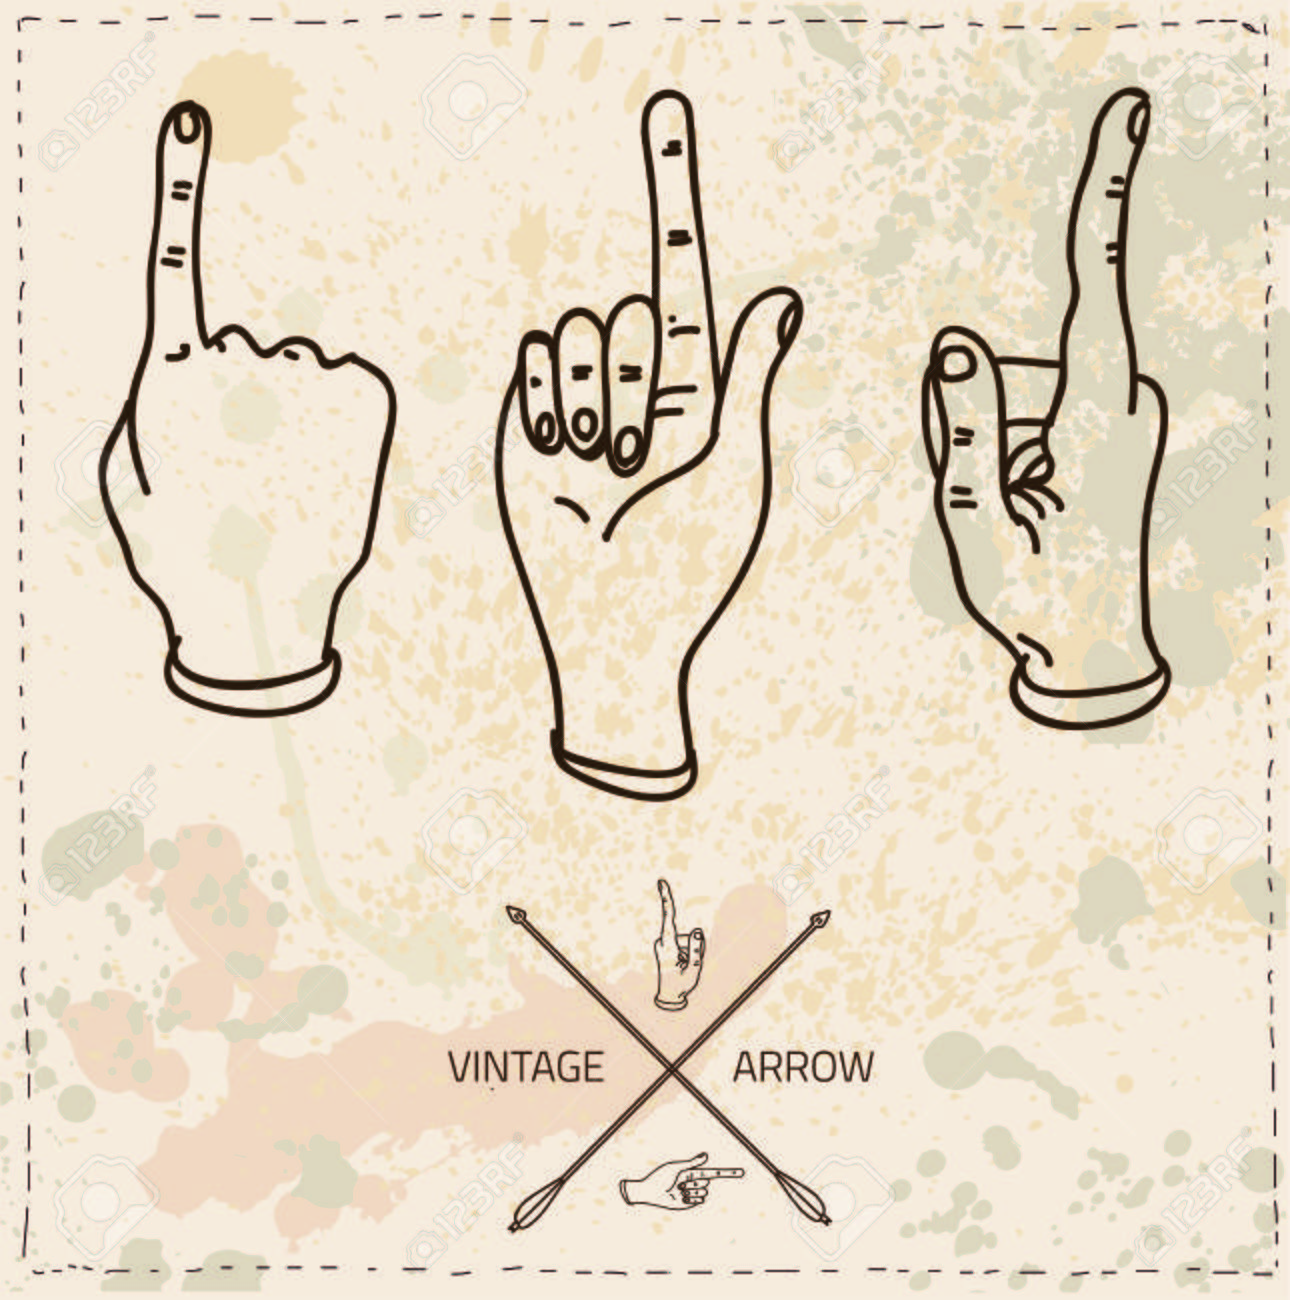 1290x1300 Vector Drawing Hand With The Index Finger Indicates The Direction